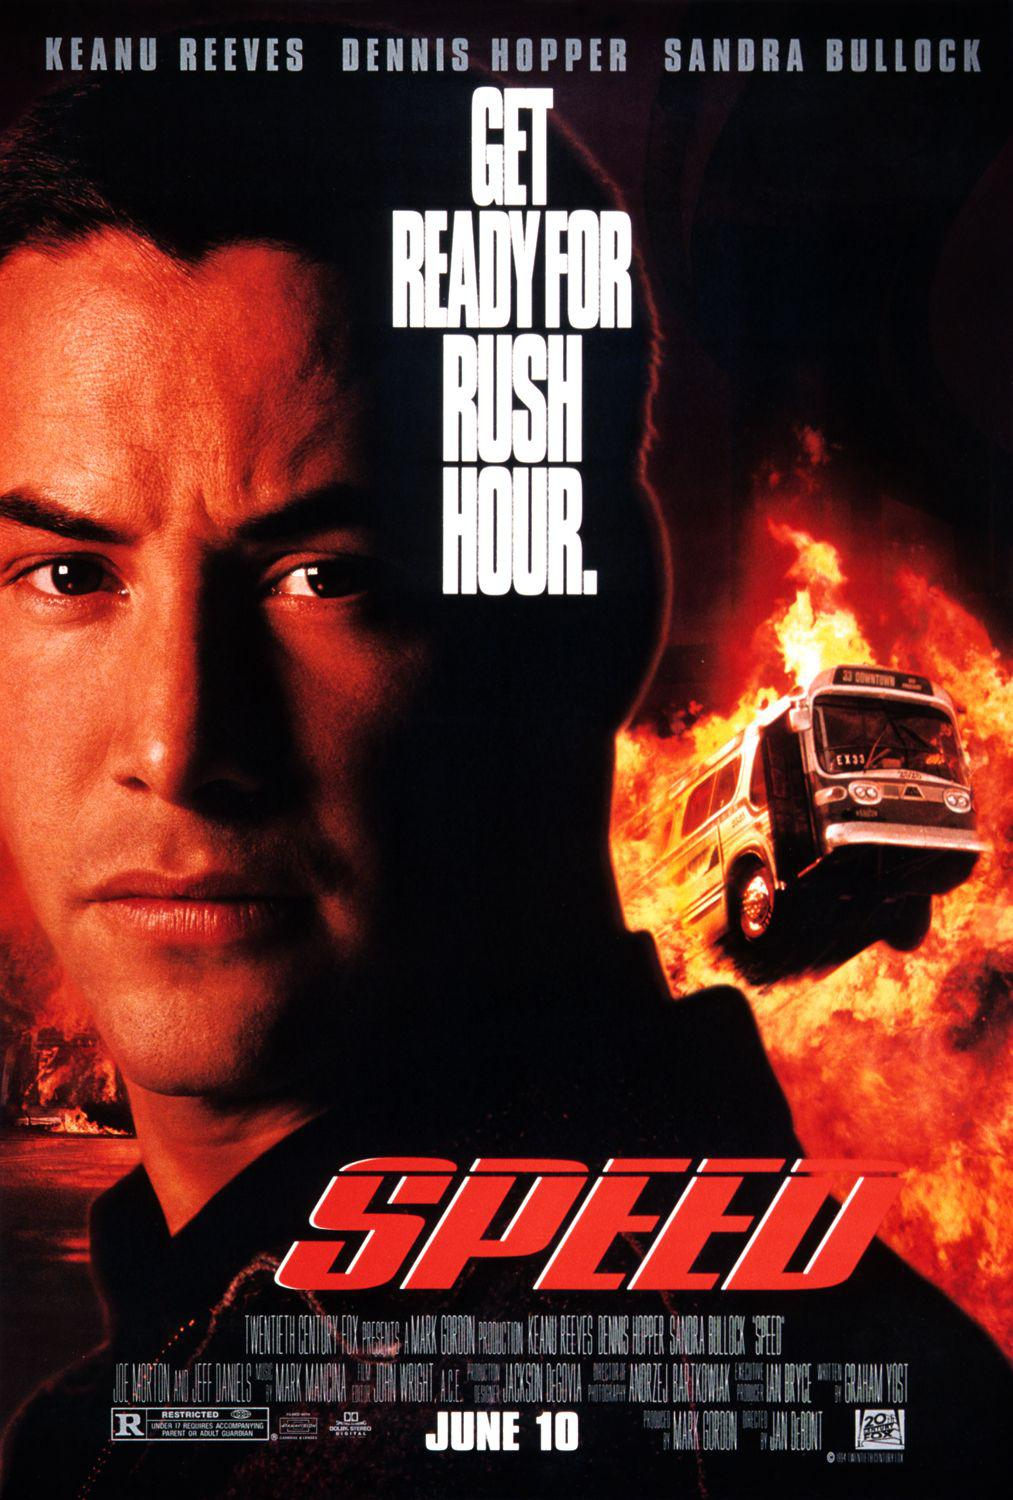 Speed - Get ready for rush hour - Keanu Reeves - Dennis Hopper - Sandra Bullock - film poster